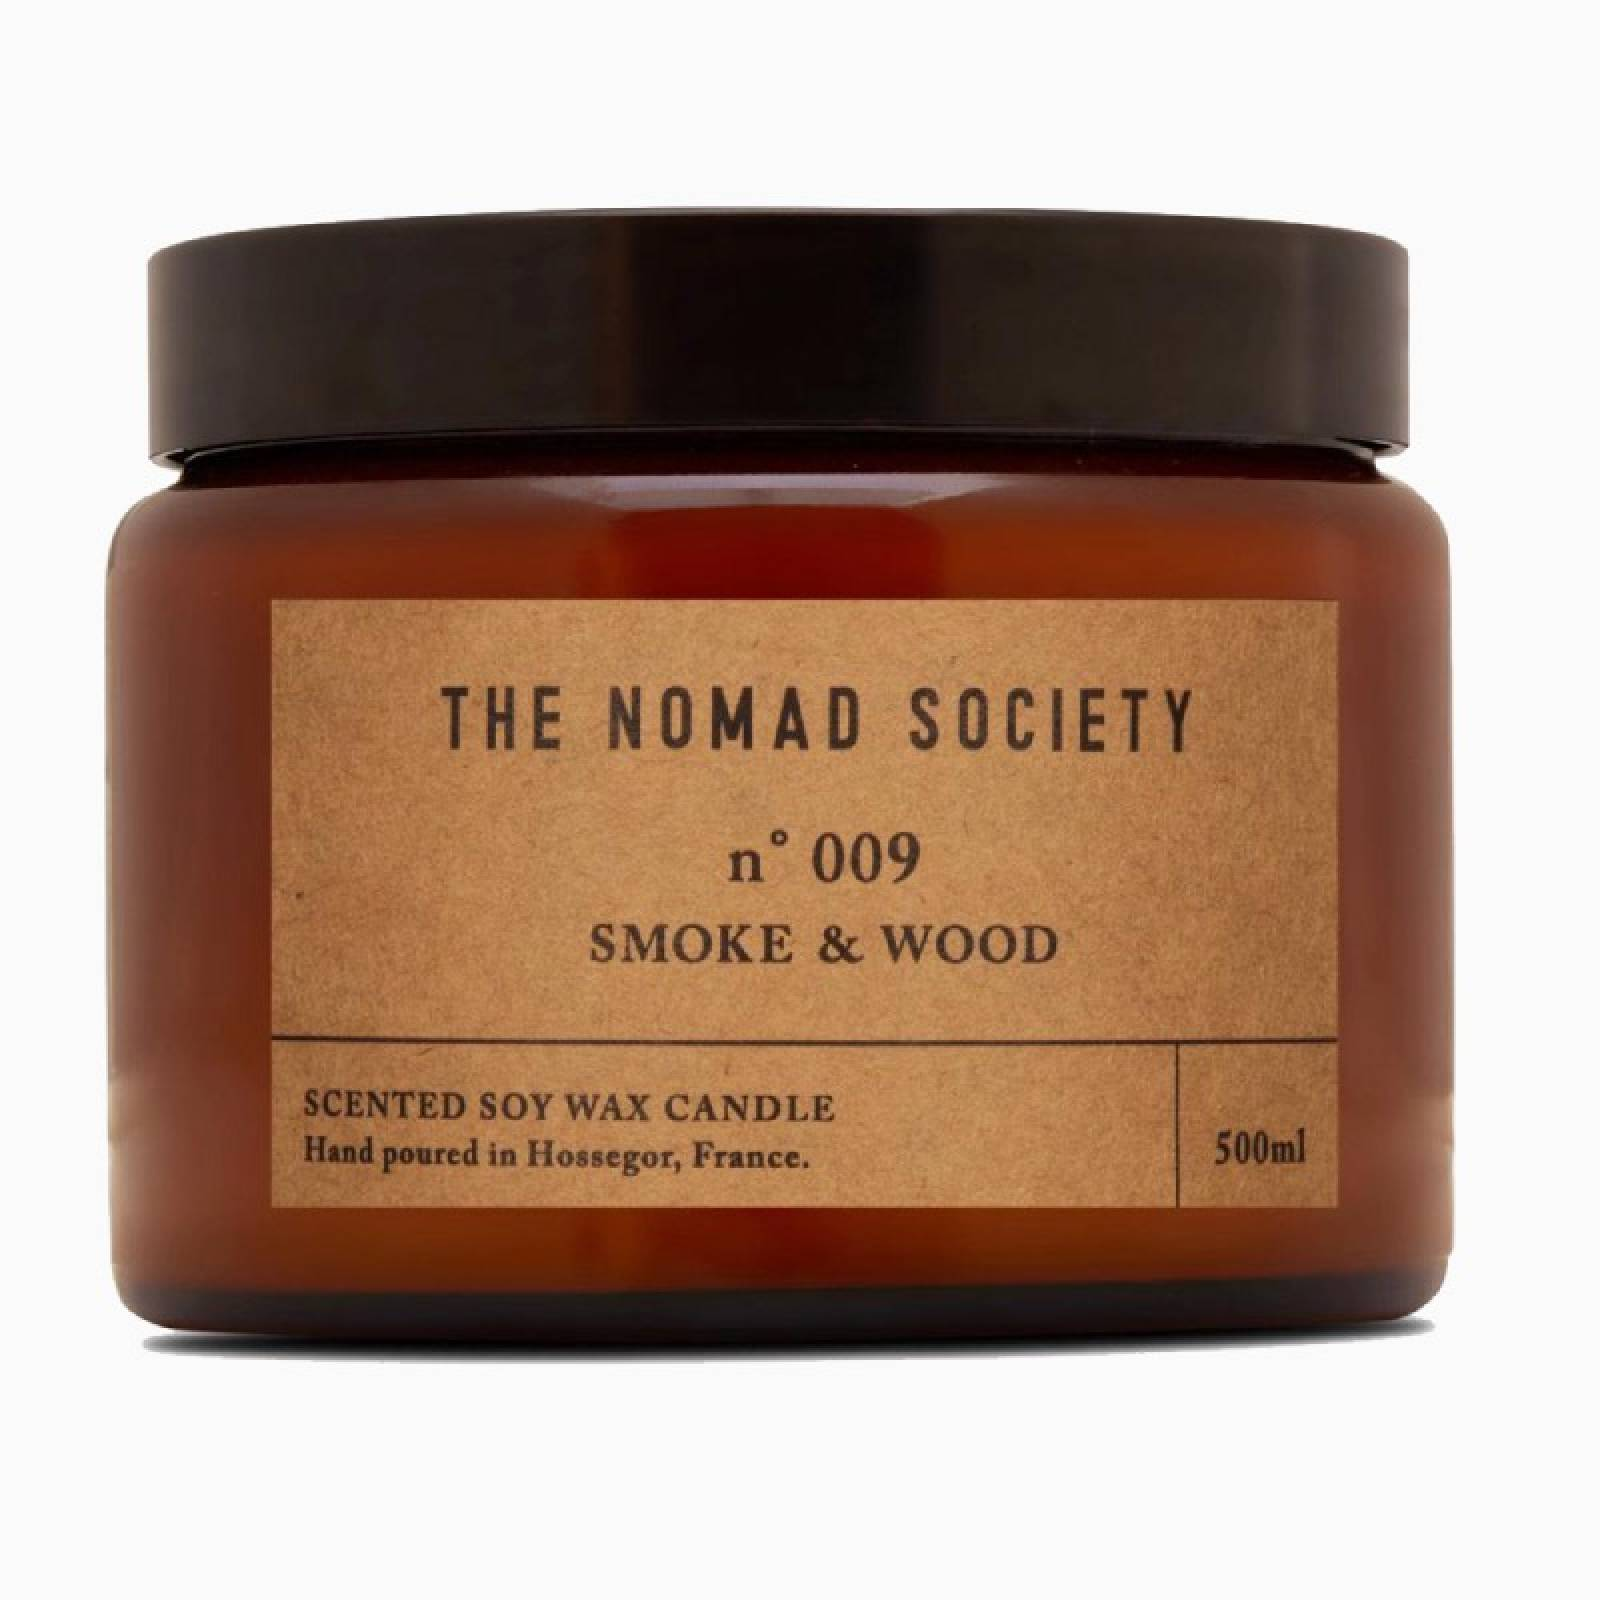 Smoke & Wood - Scented Soy Candle In Glass Jar 500ml